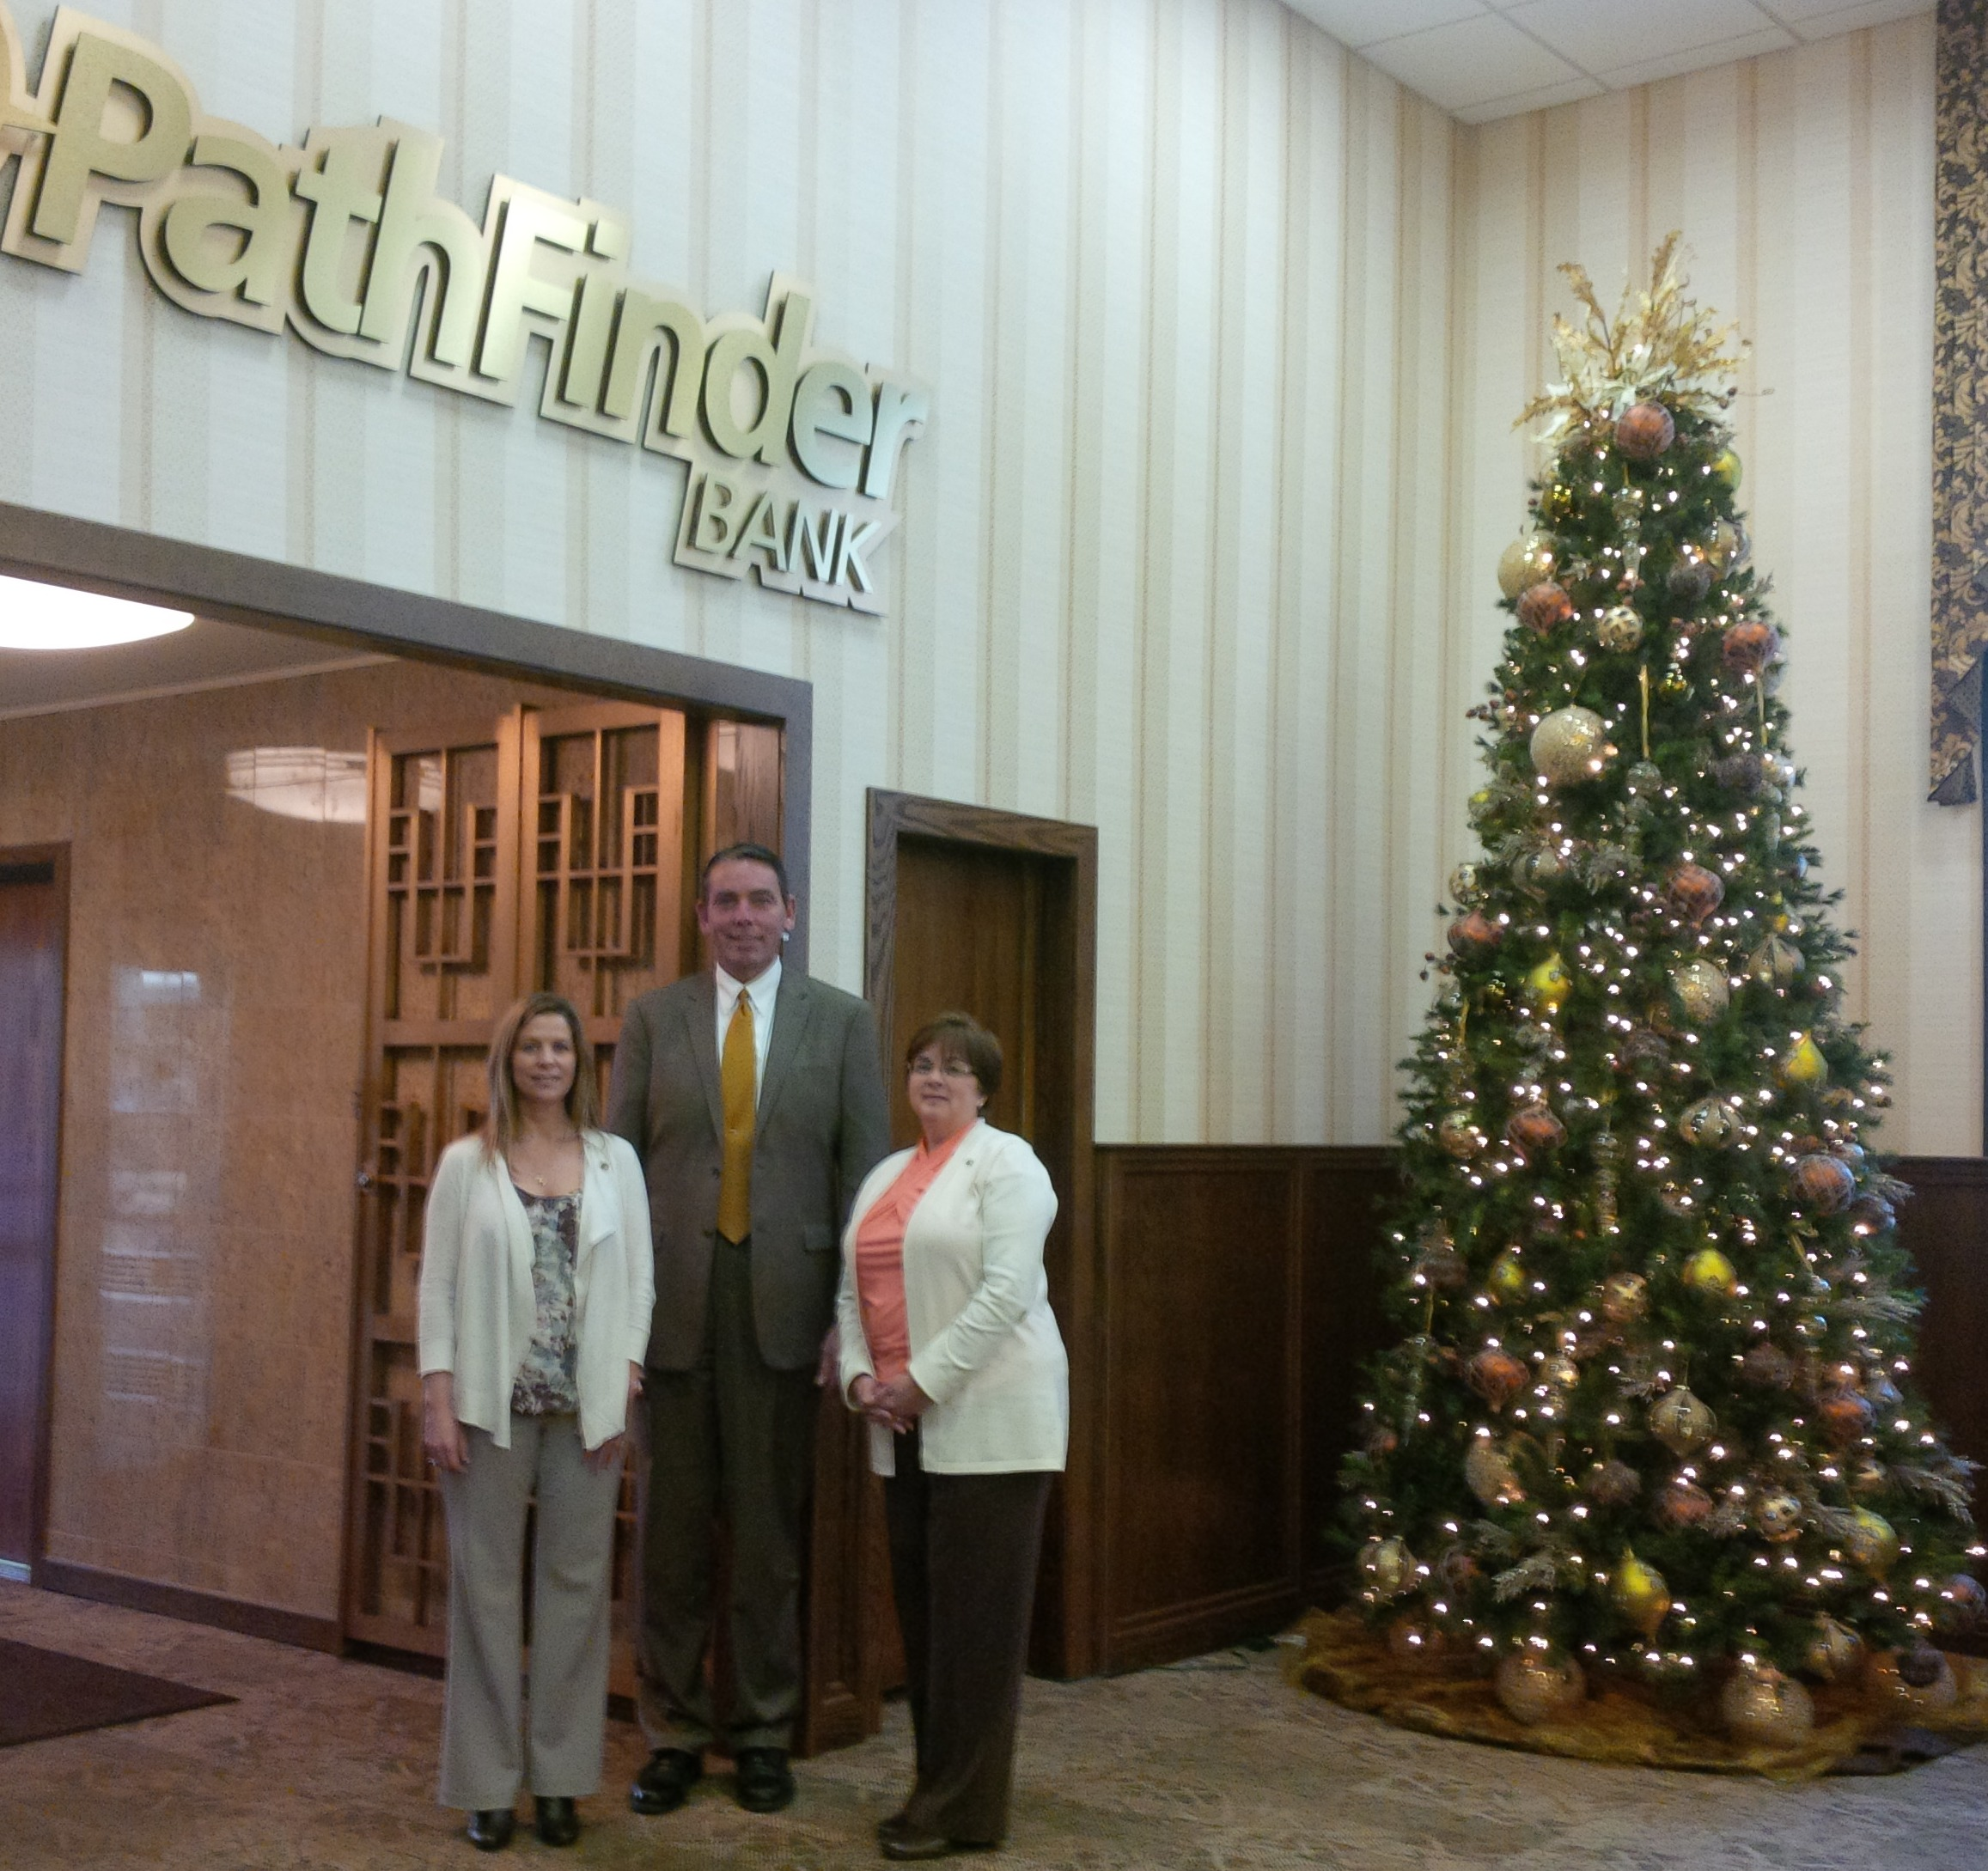 Pathfinder Bank Employees Helps Guide United Way Campaign